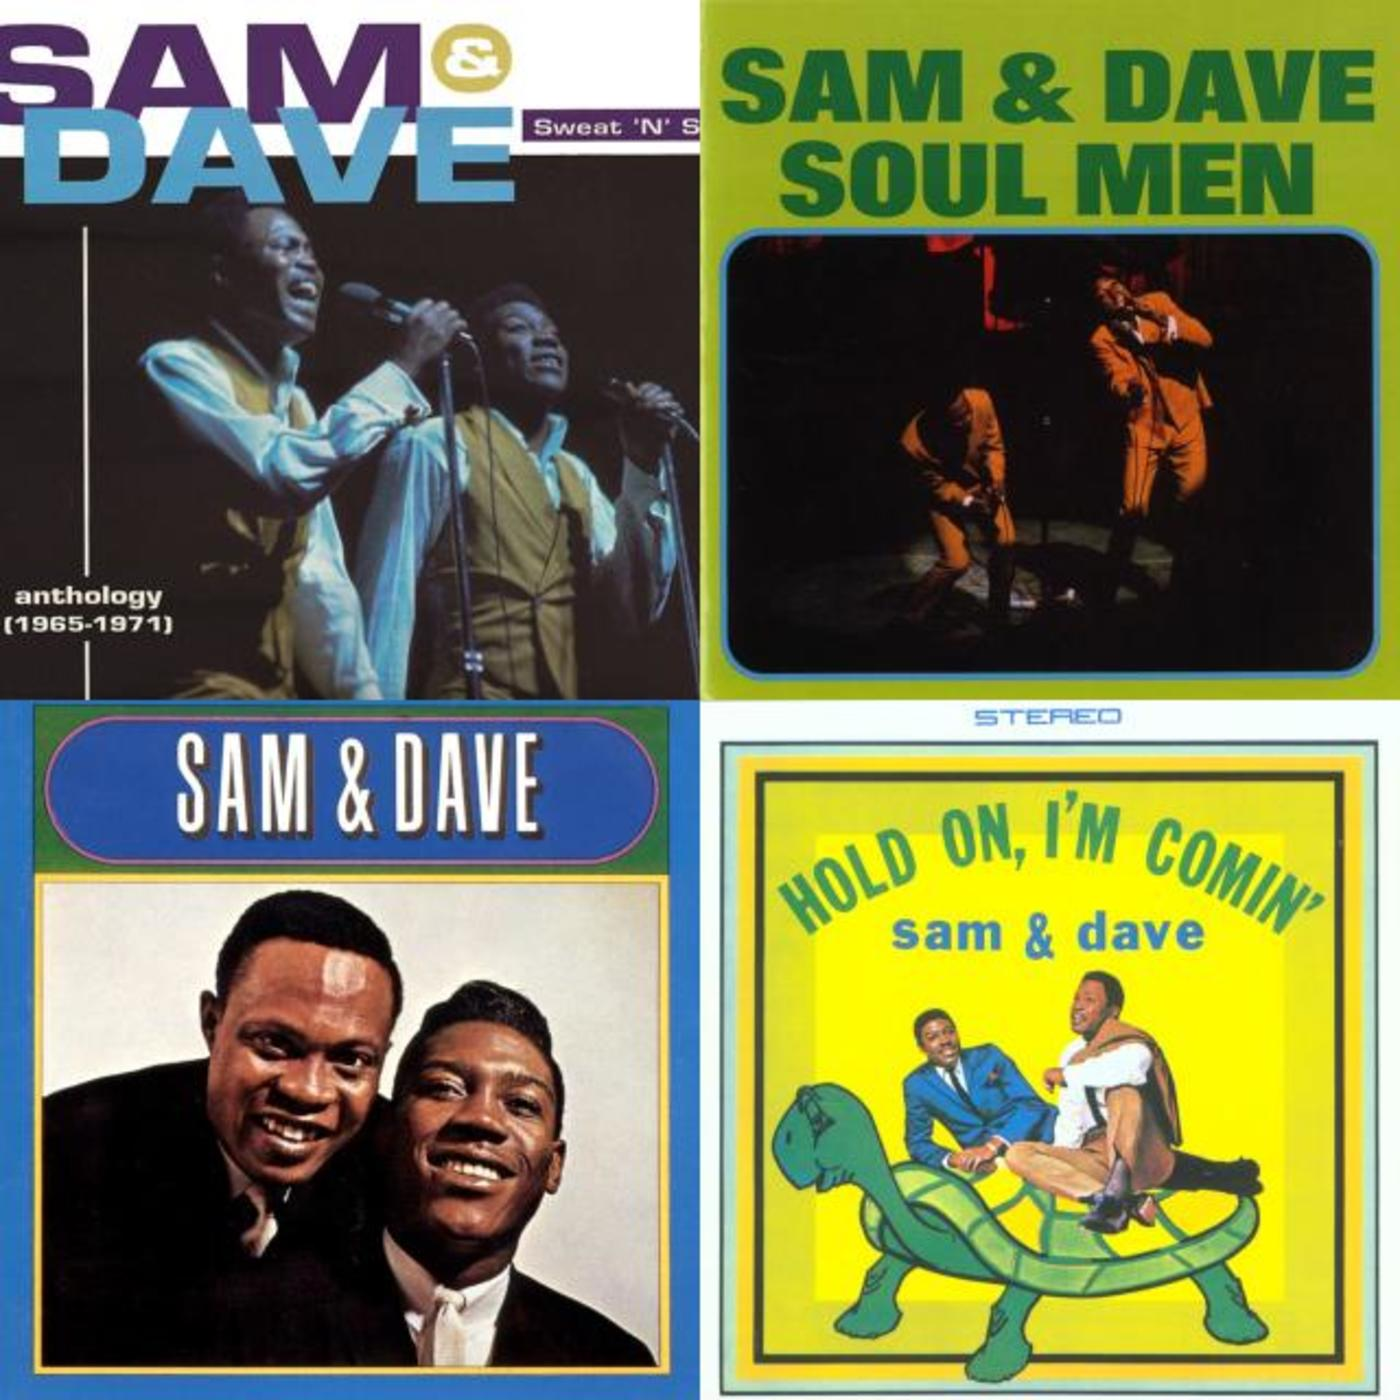 Remembering Dave Prater - Sam & Dave